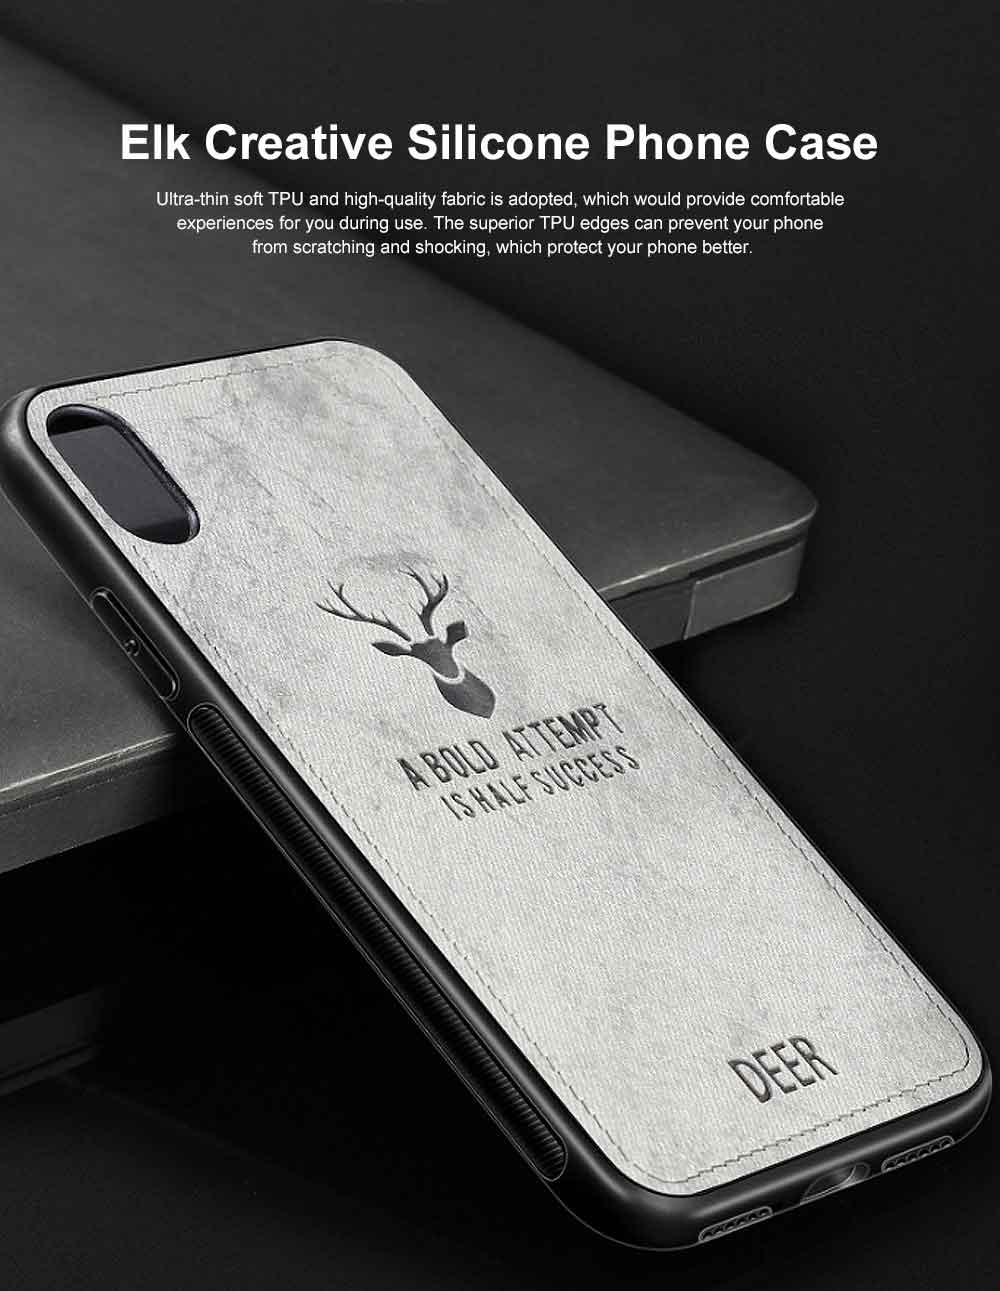 Elk Creative Silicone Phone Case, Creative Case Cover, Characteristic Linen Grain, Soft Silicone Case Cover, Apply for iPhone 0